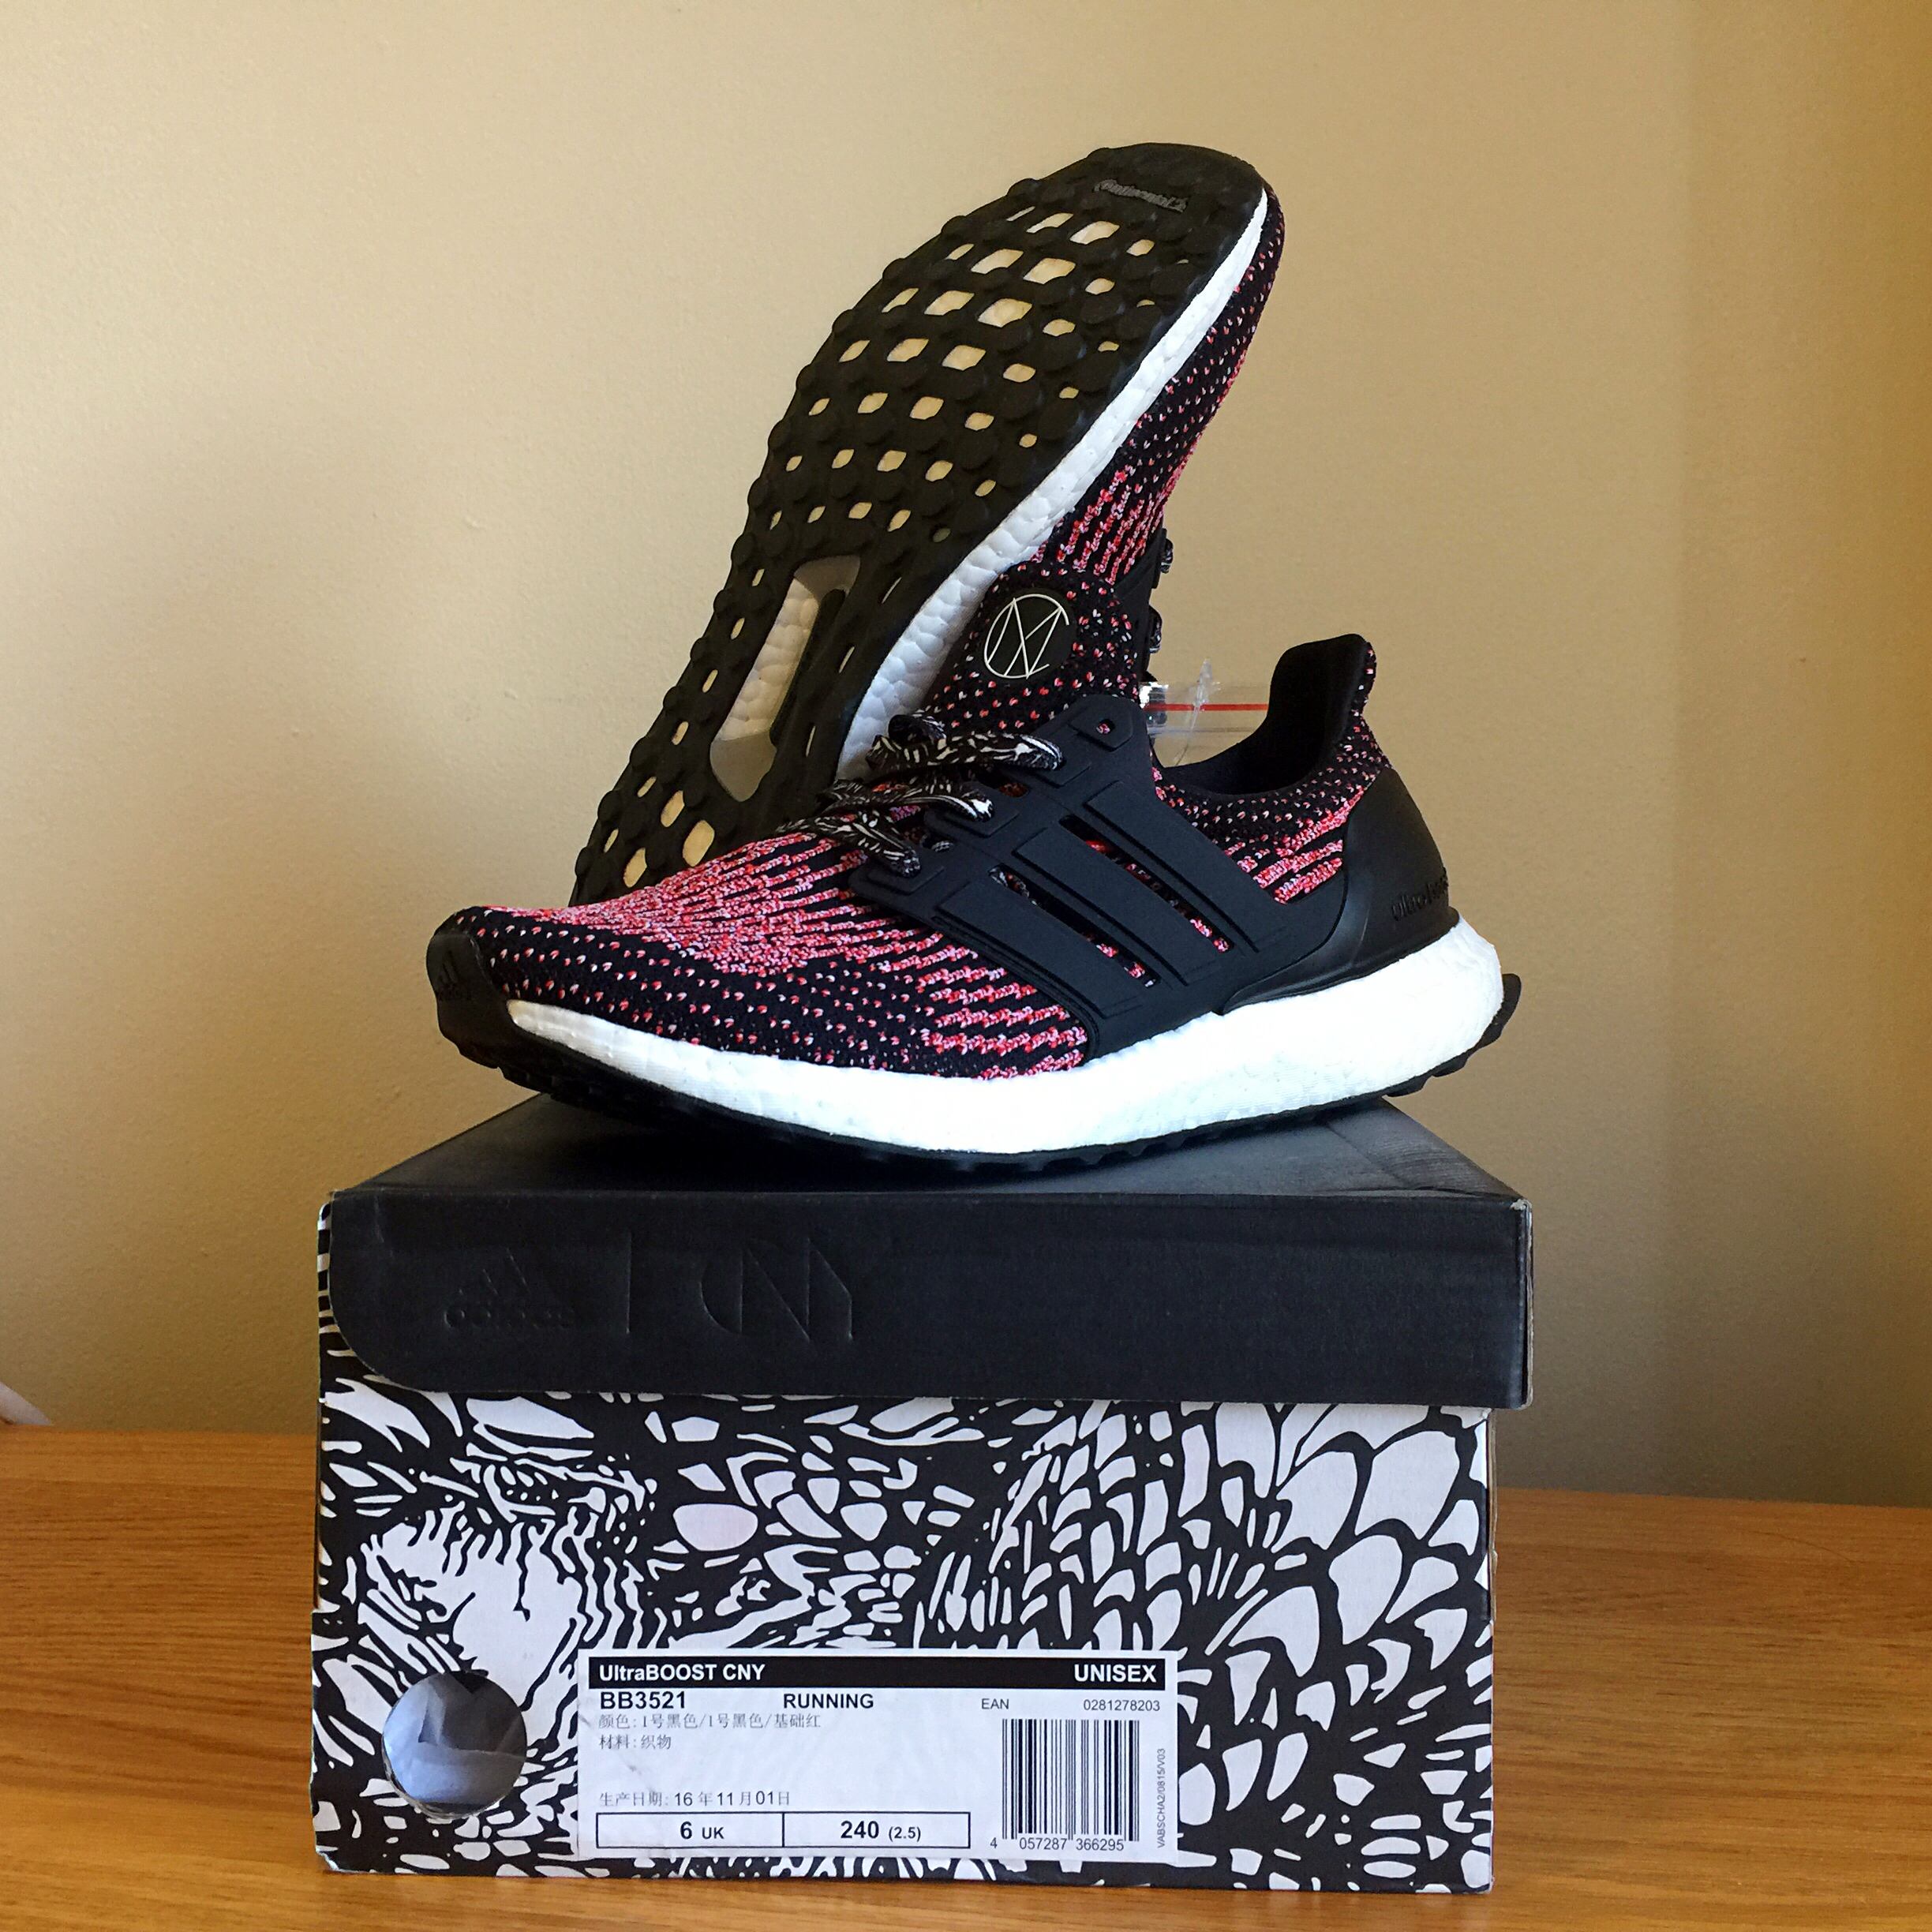 4b989ed5054fc Adidas. Adidas Ultra Boost Chinese New Year 3.0 Size 6.5 CNY ...